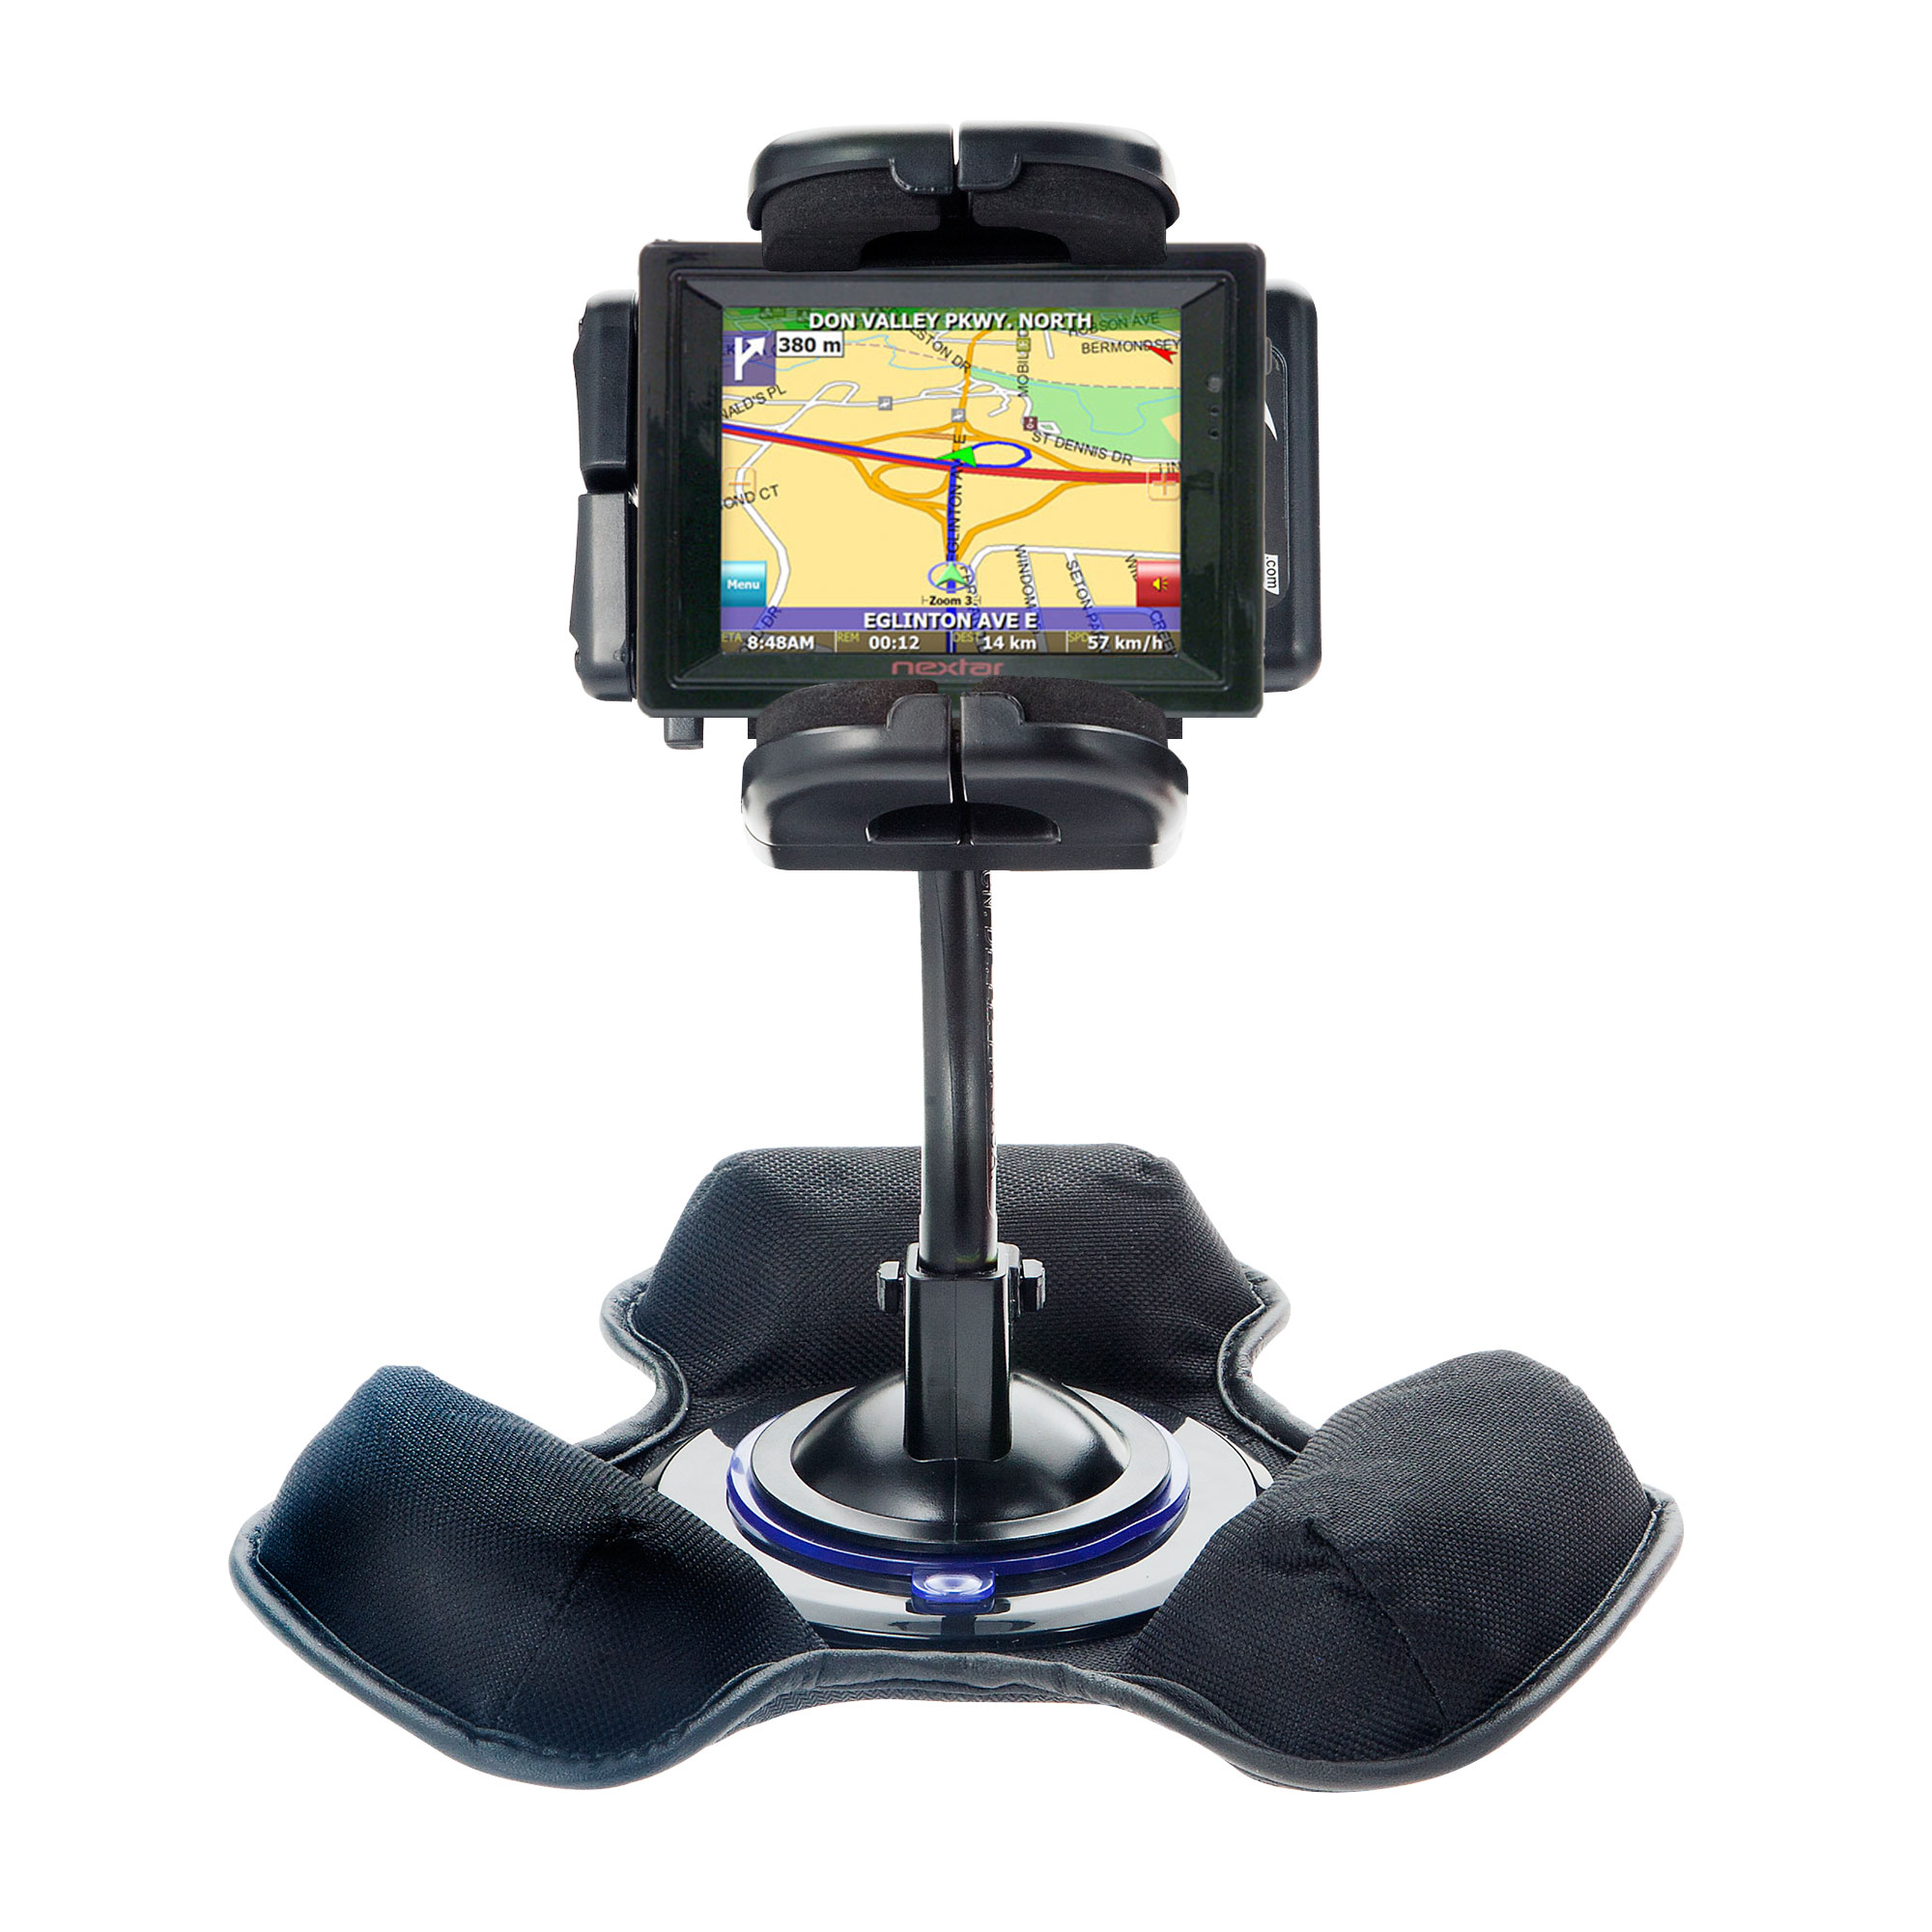 Dash and Windshield Holder compatible with the Nextar SNAP3